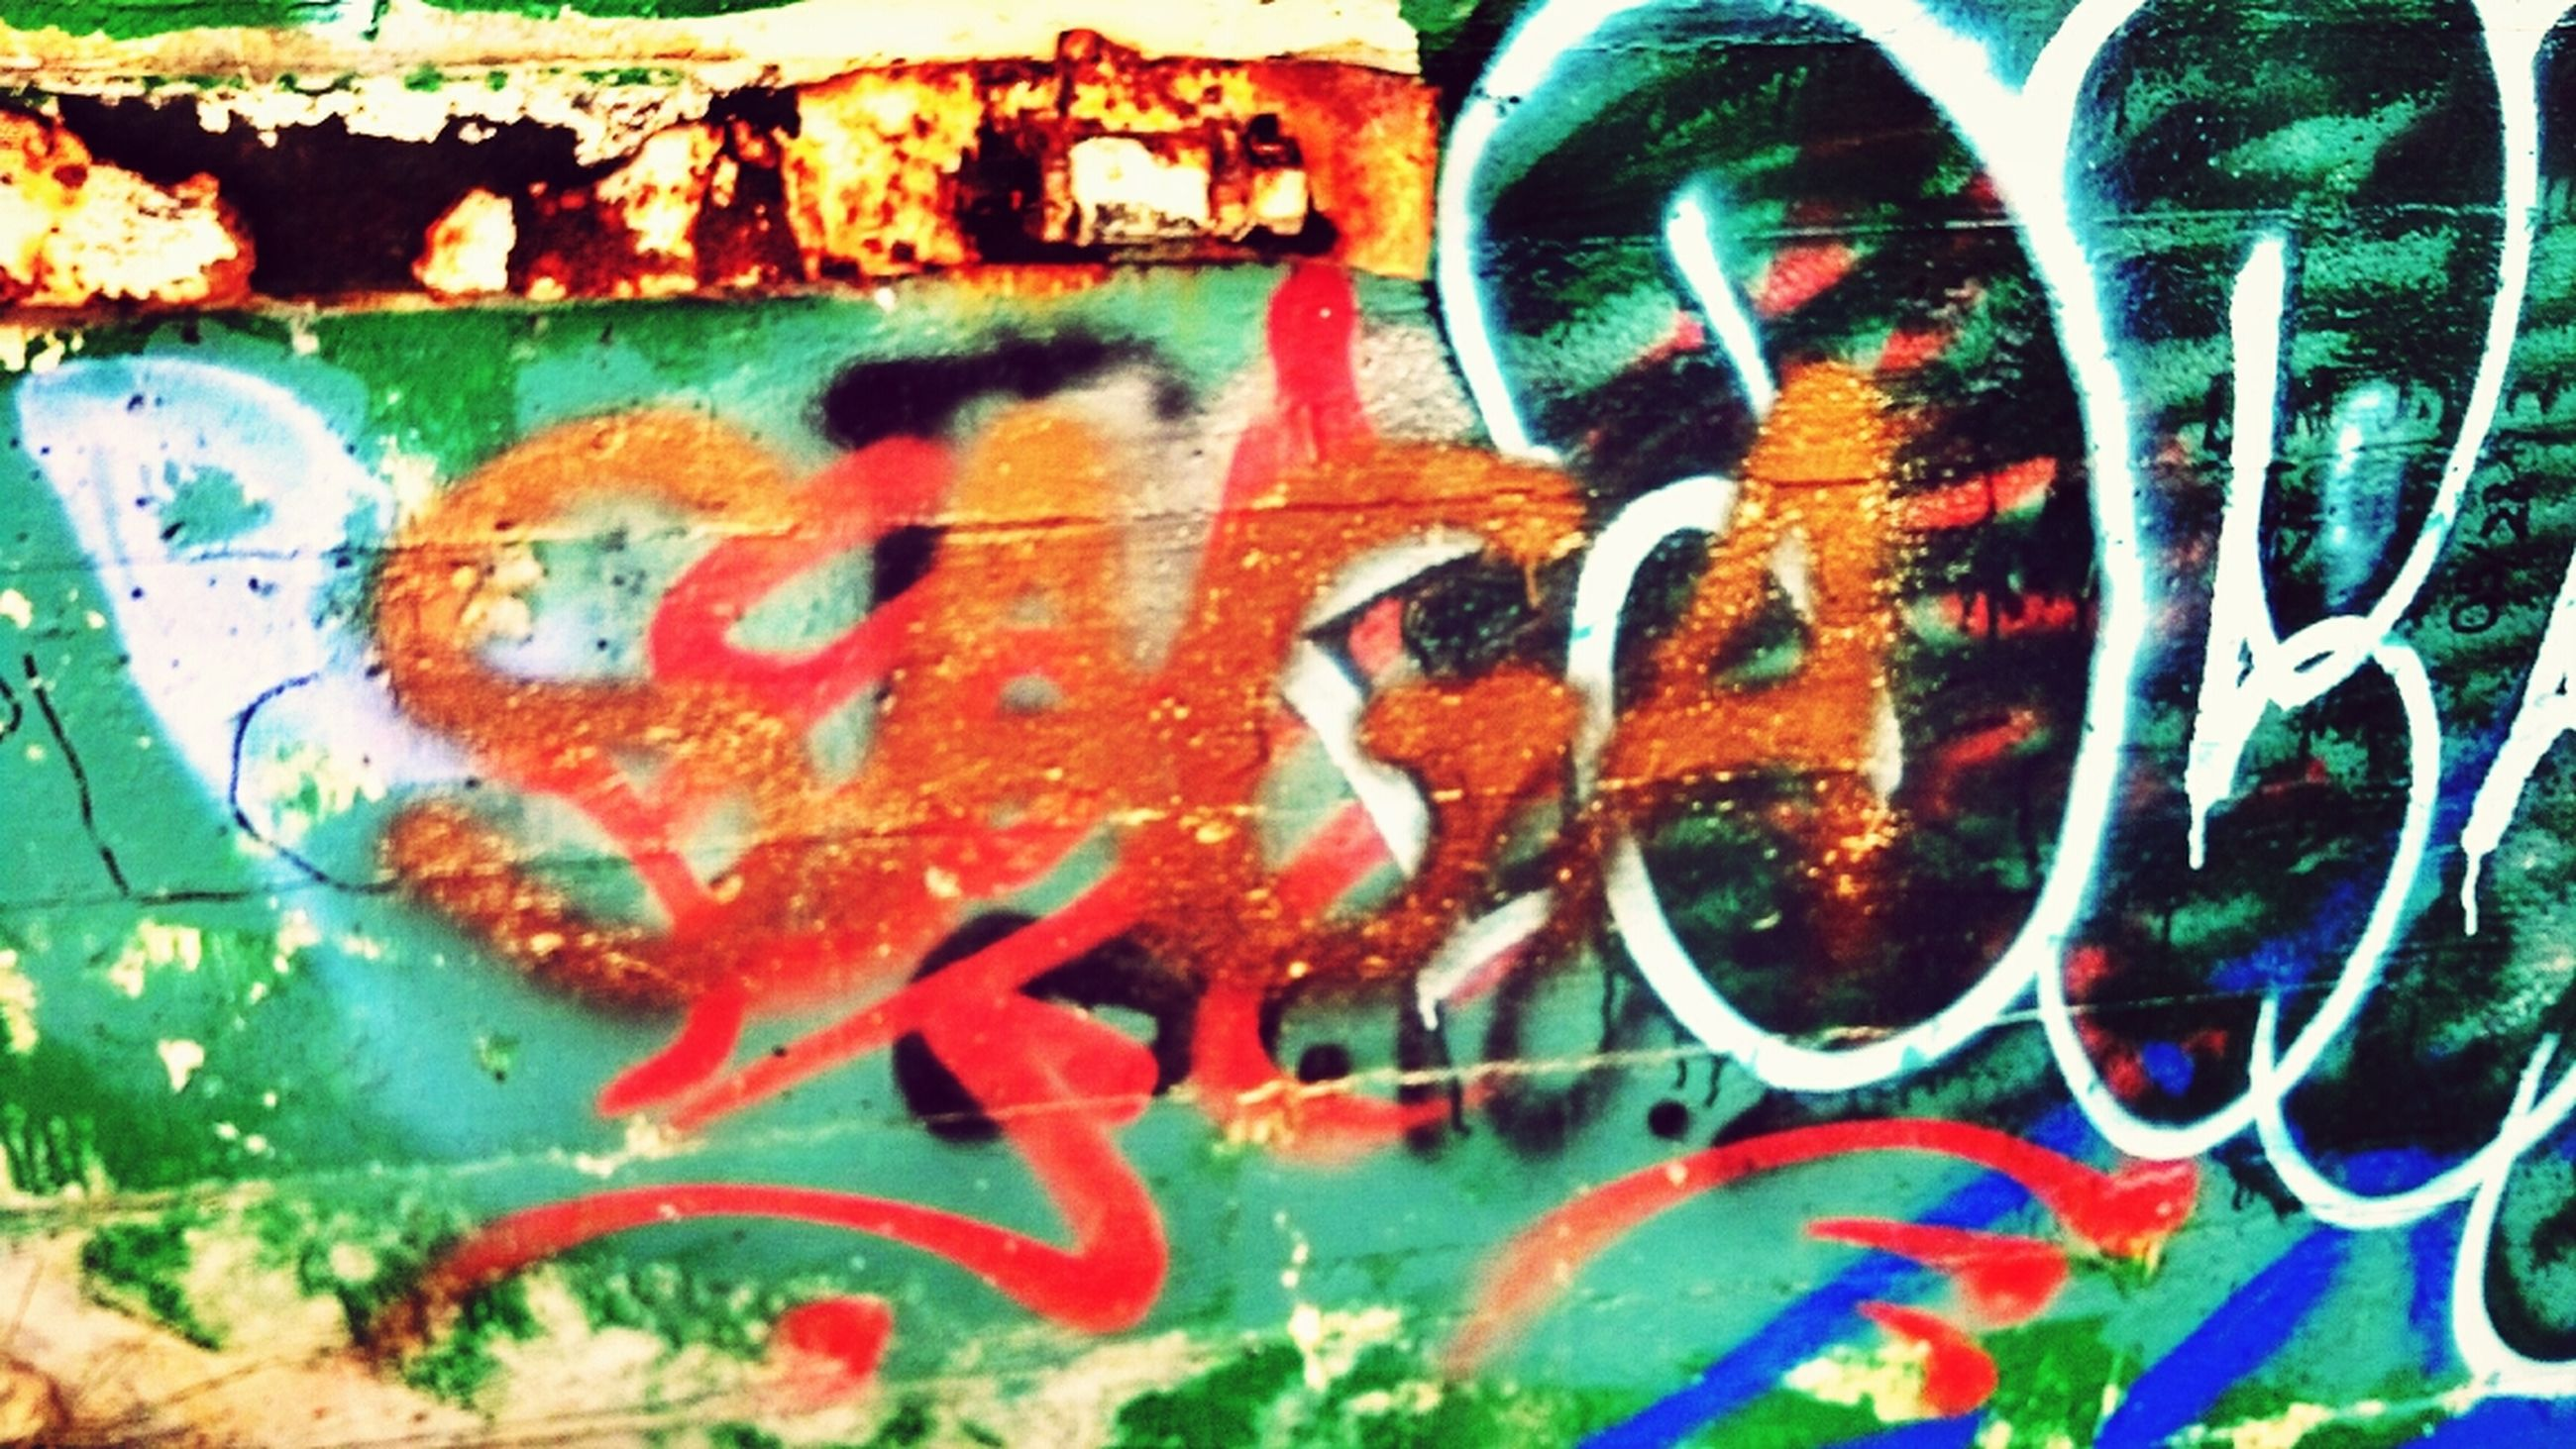 graffiti, creativity, multi colored, art and craft, art, backgrounds, full frame, wall - building feature, close-up, pattern, street art, abstract, text, no people, paint, outdoors, day, colorful, design